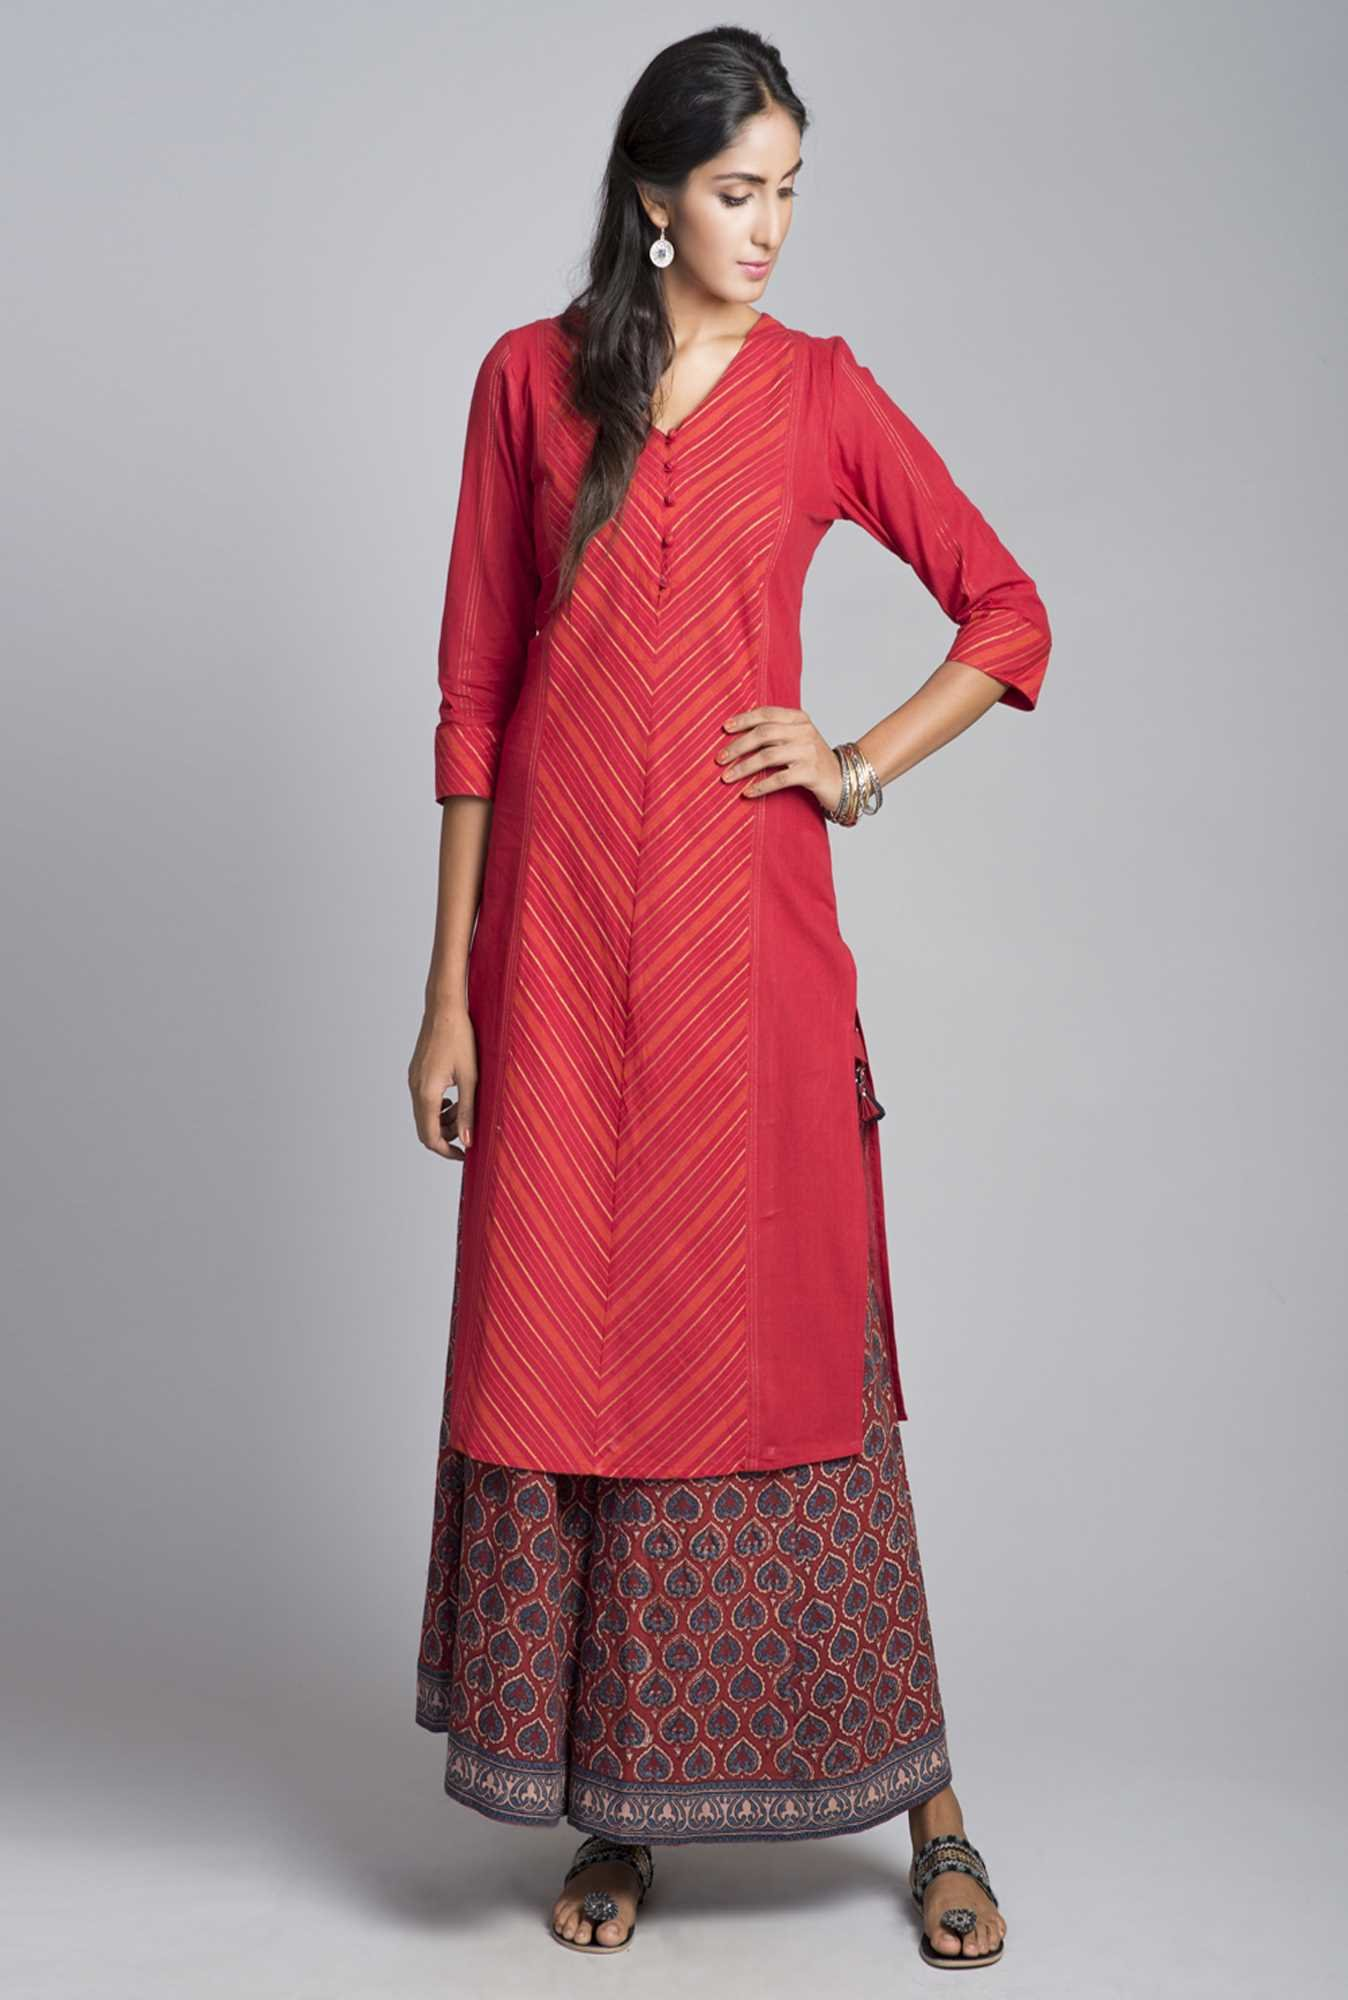 Fabindia Red Printed Kurta